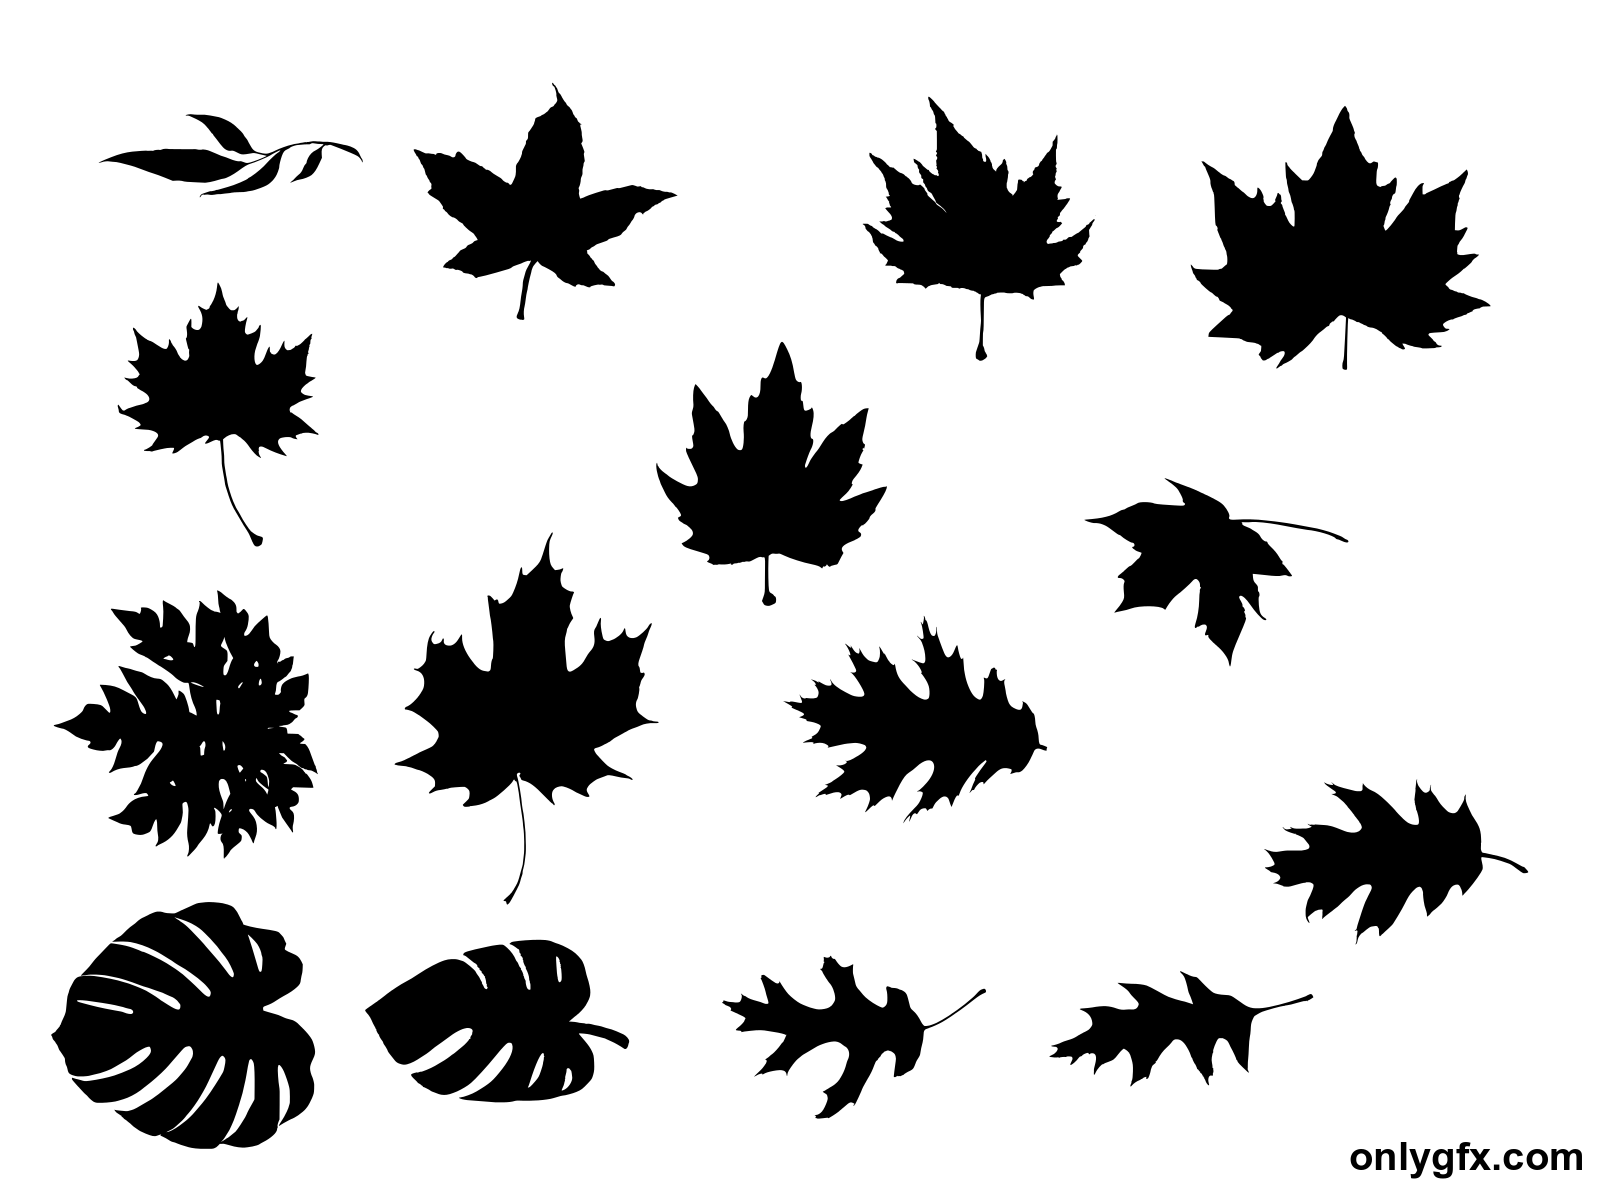 15 Leaf Silhouette Transparent